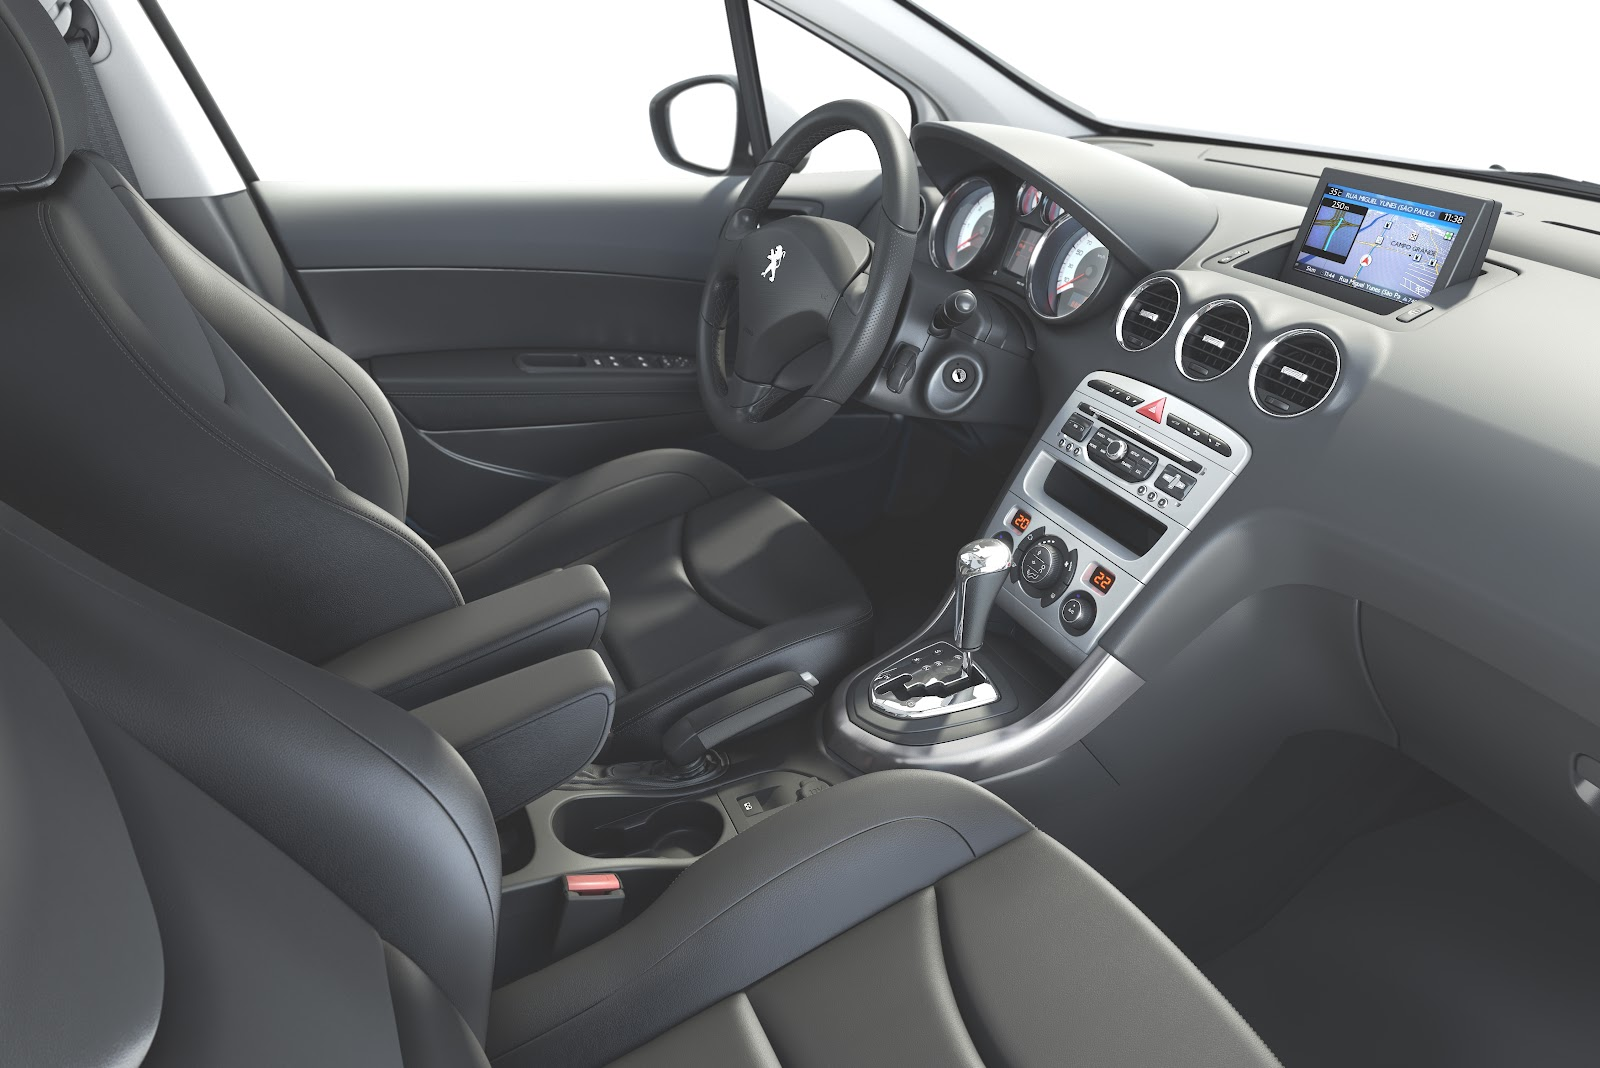 Peugeot 308 a nova gera o do hatch m dio da marca do for Interior 408 allure